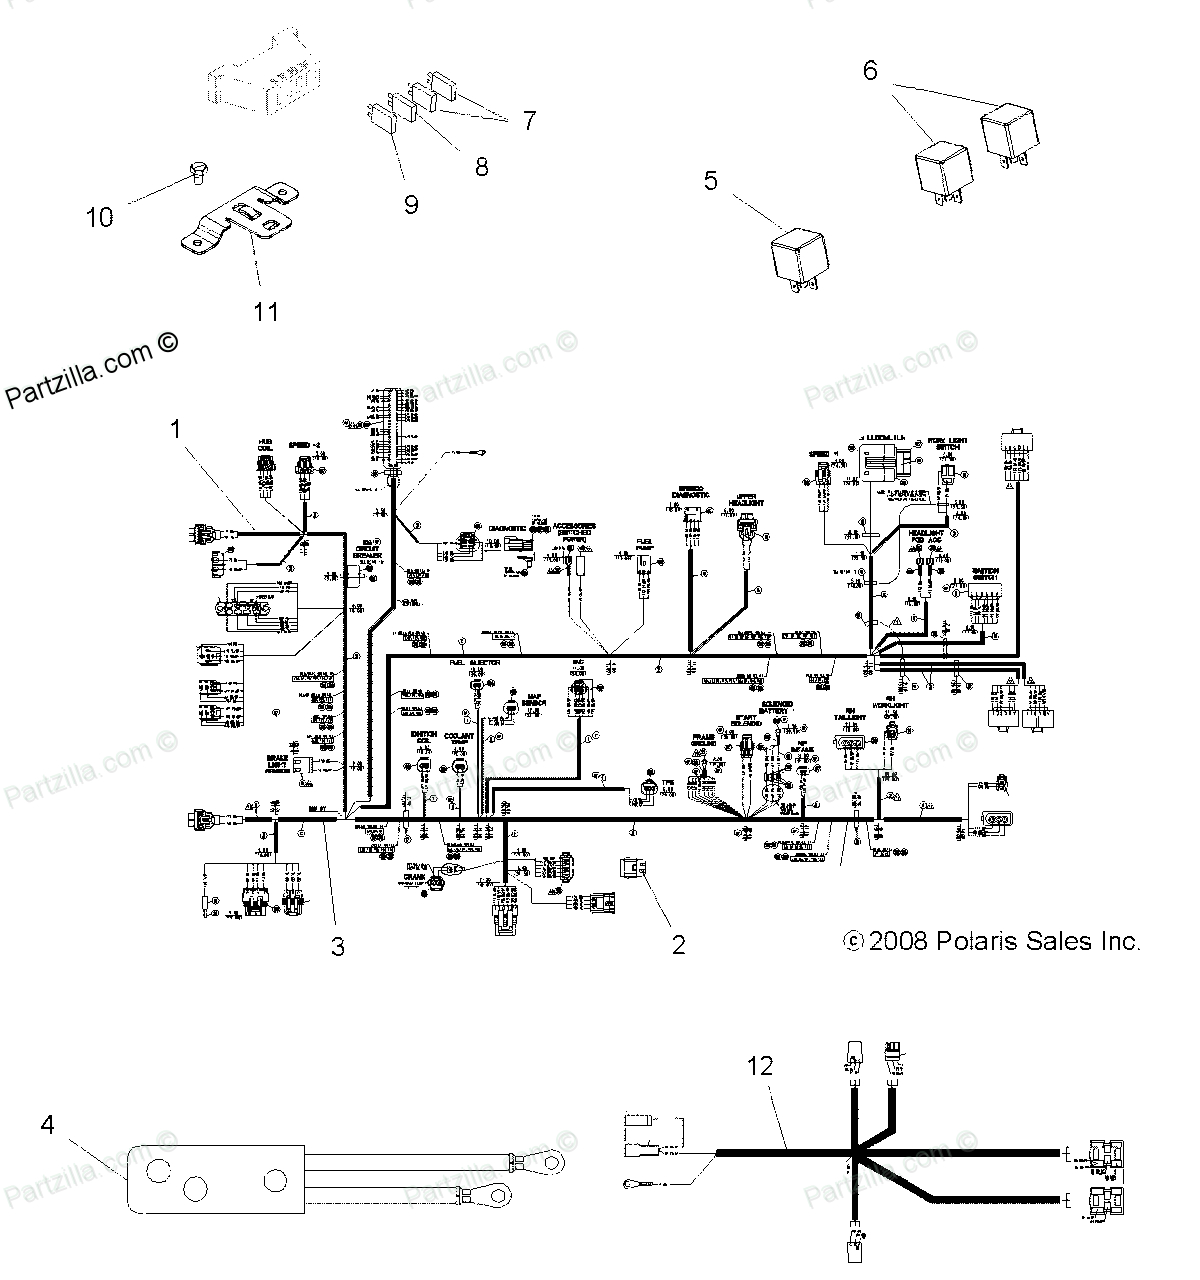 Wiring Diagram Polaris Sportsman Manuals